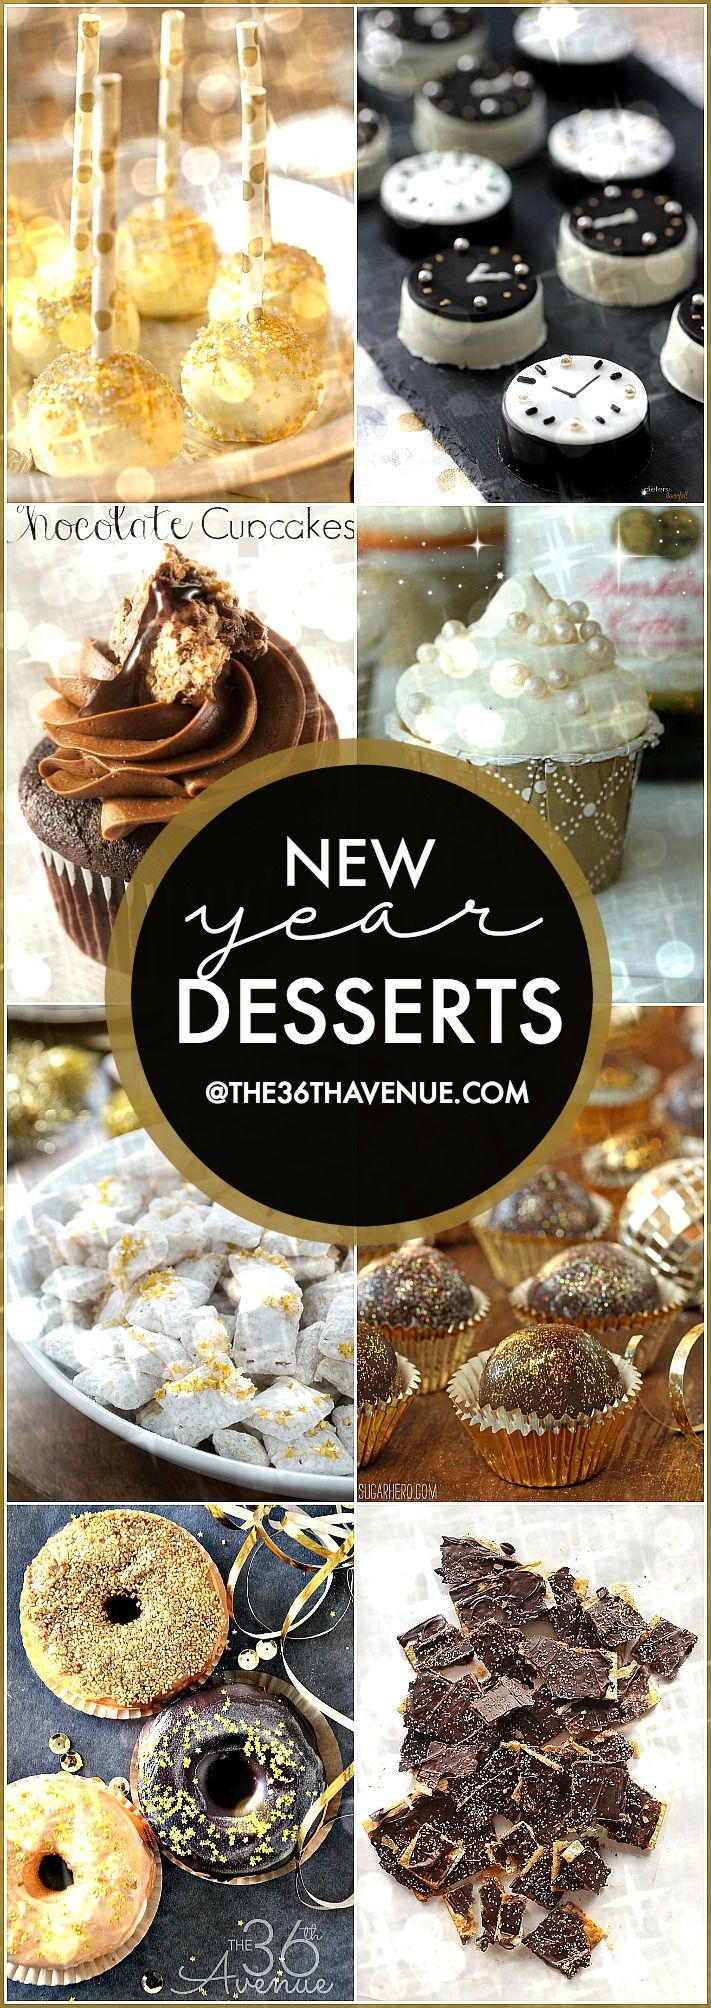 New Year Desserts | The 36th AVENUE | Bloglovin'